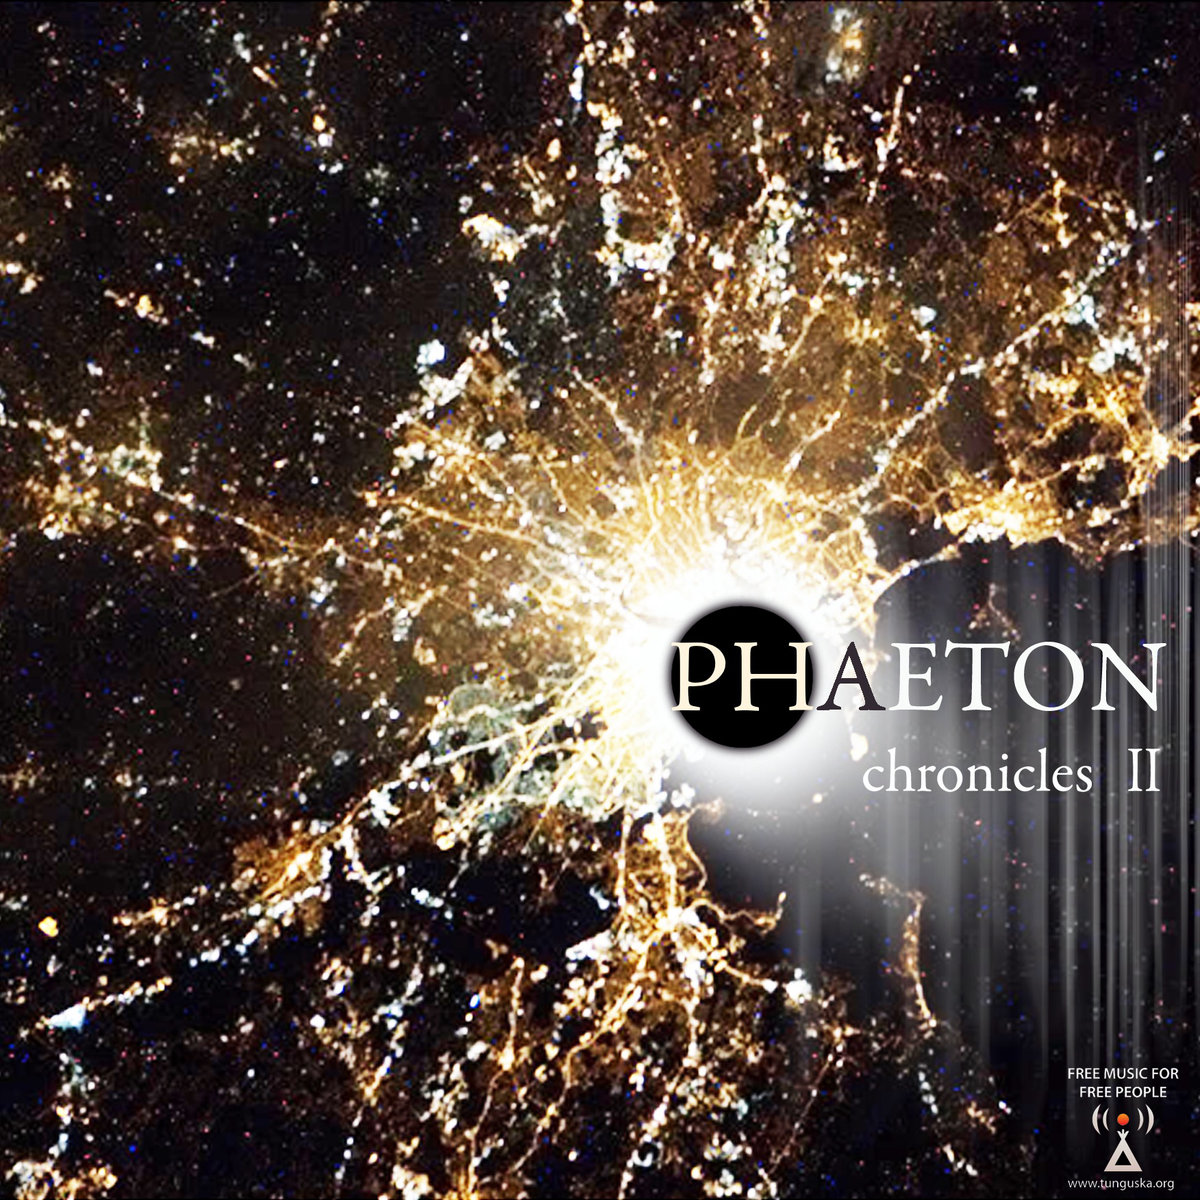 Miusha - Aquarelle (Max Loginov remix) @ 'Phaeton Chronicles - Volume 2' album (electronic, abstract electronic)